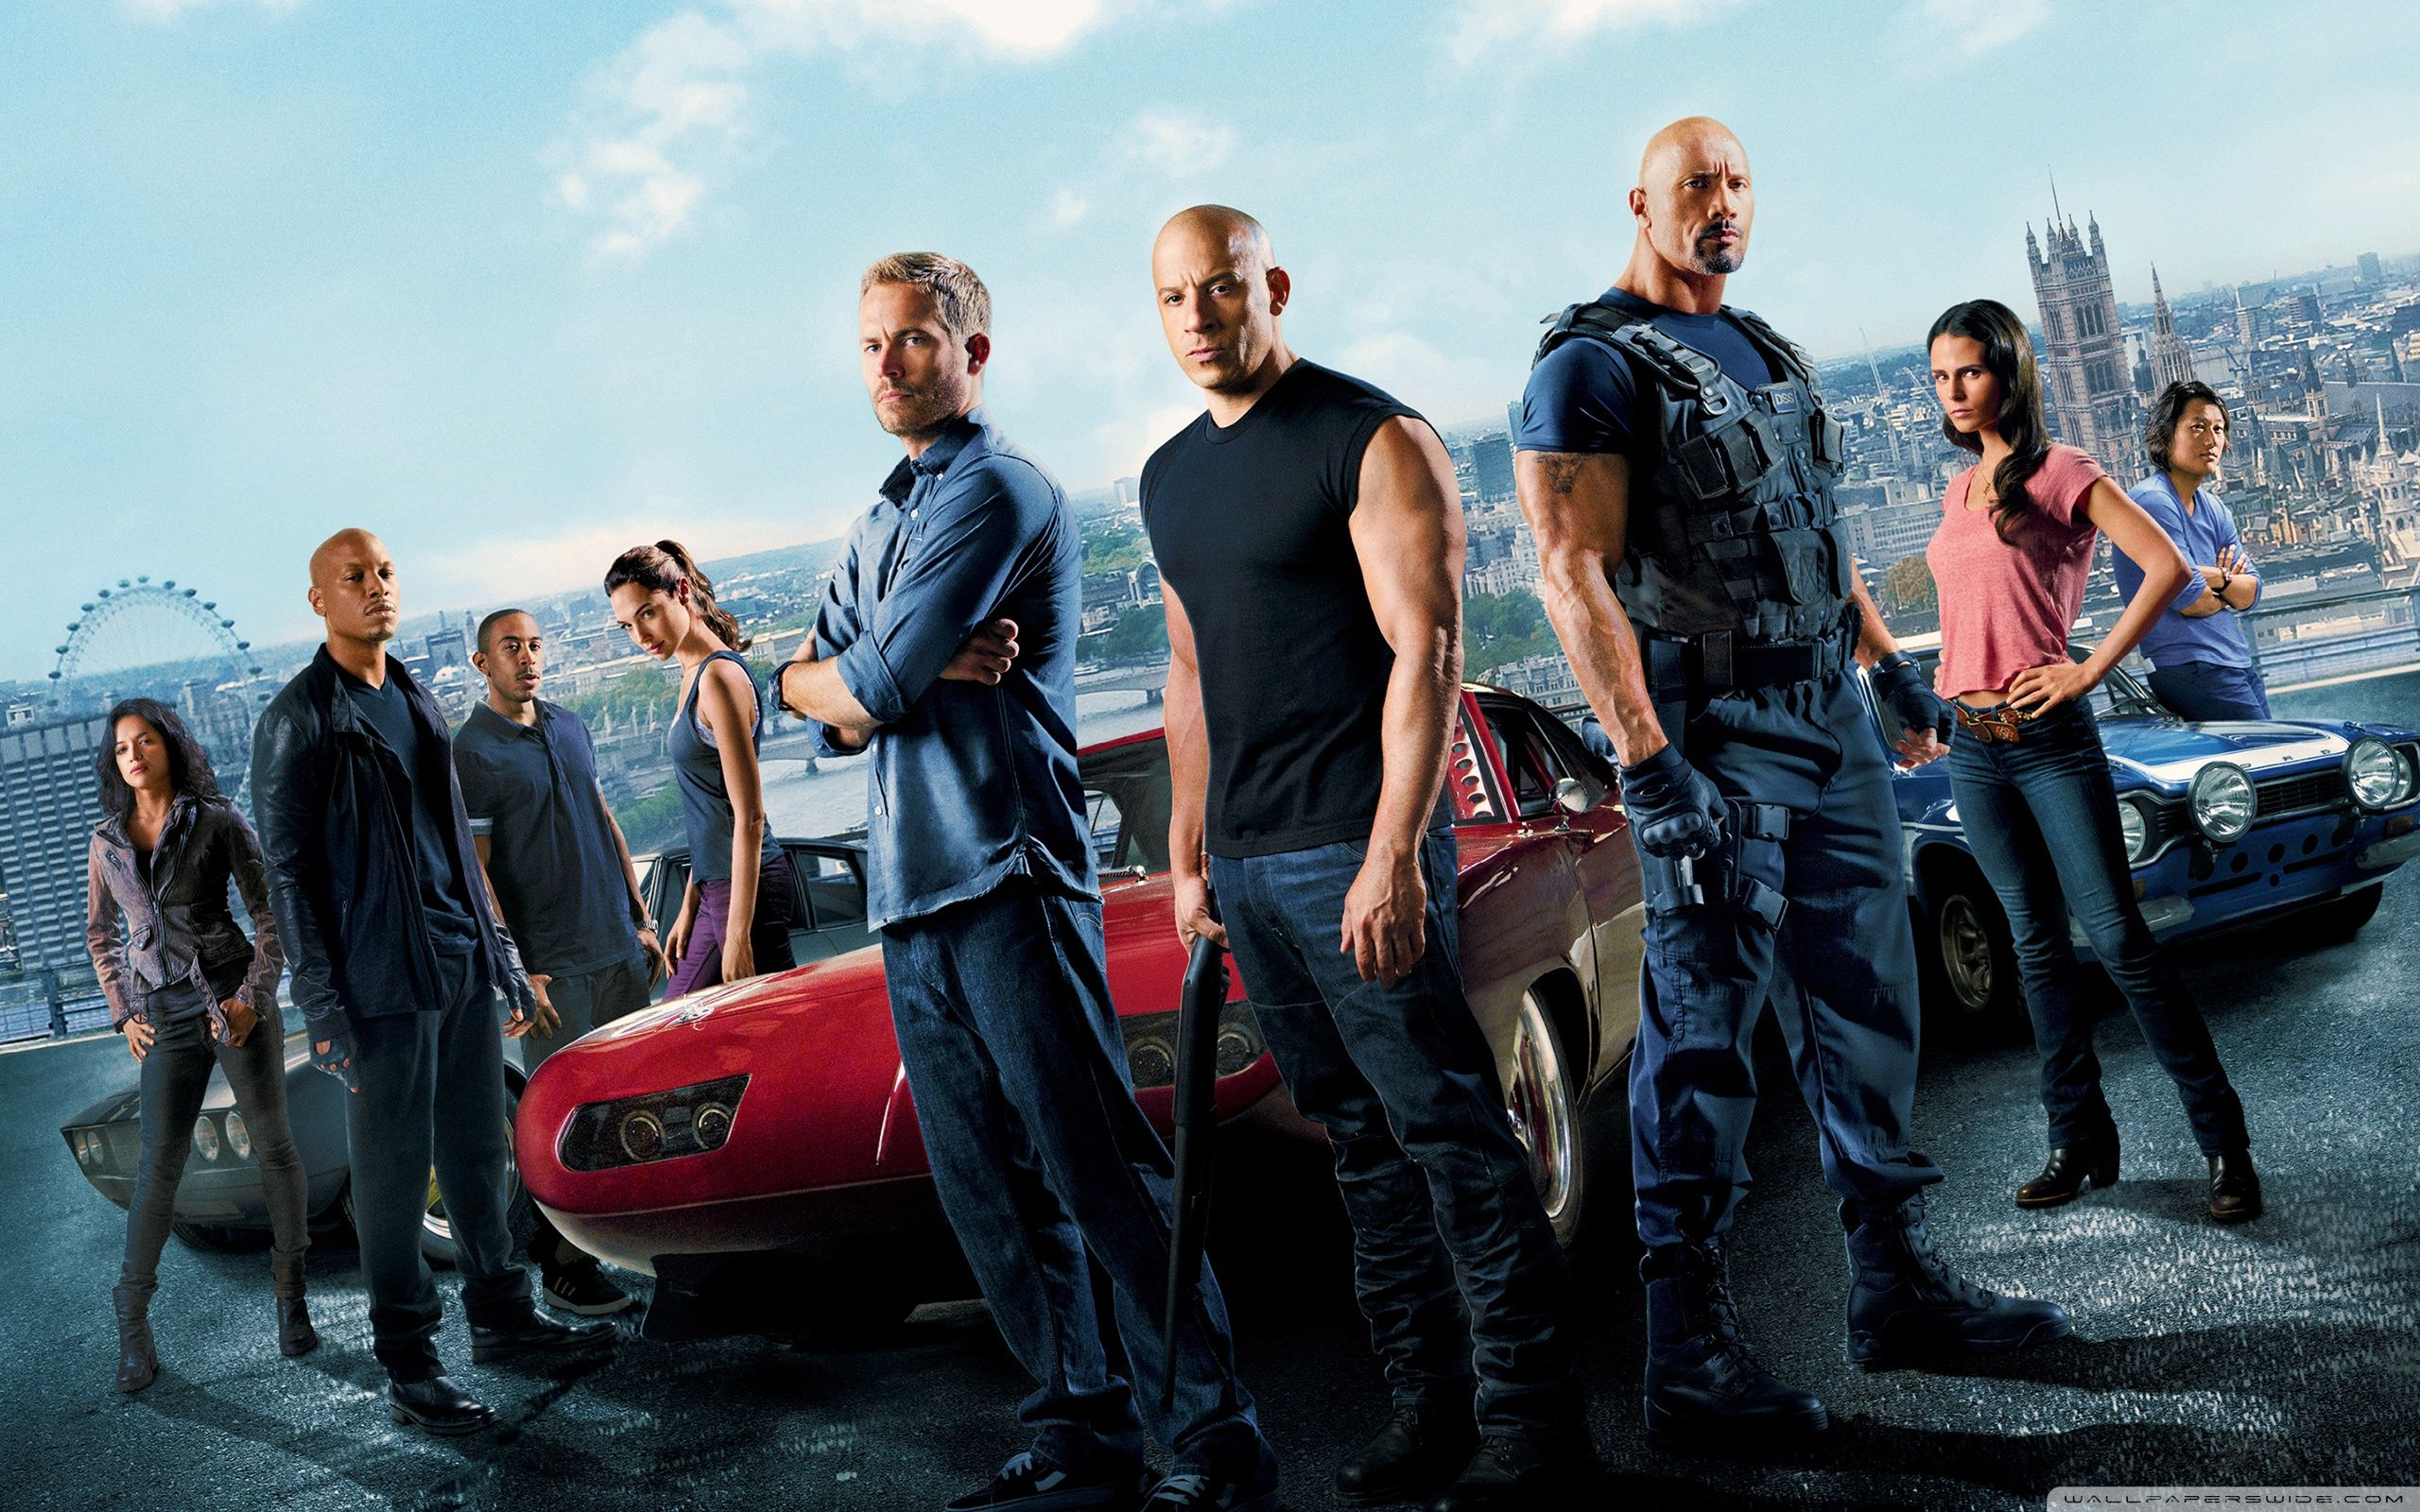 Fast and Furious 6 Movie 2013 HD Wallpaper Widescreen